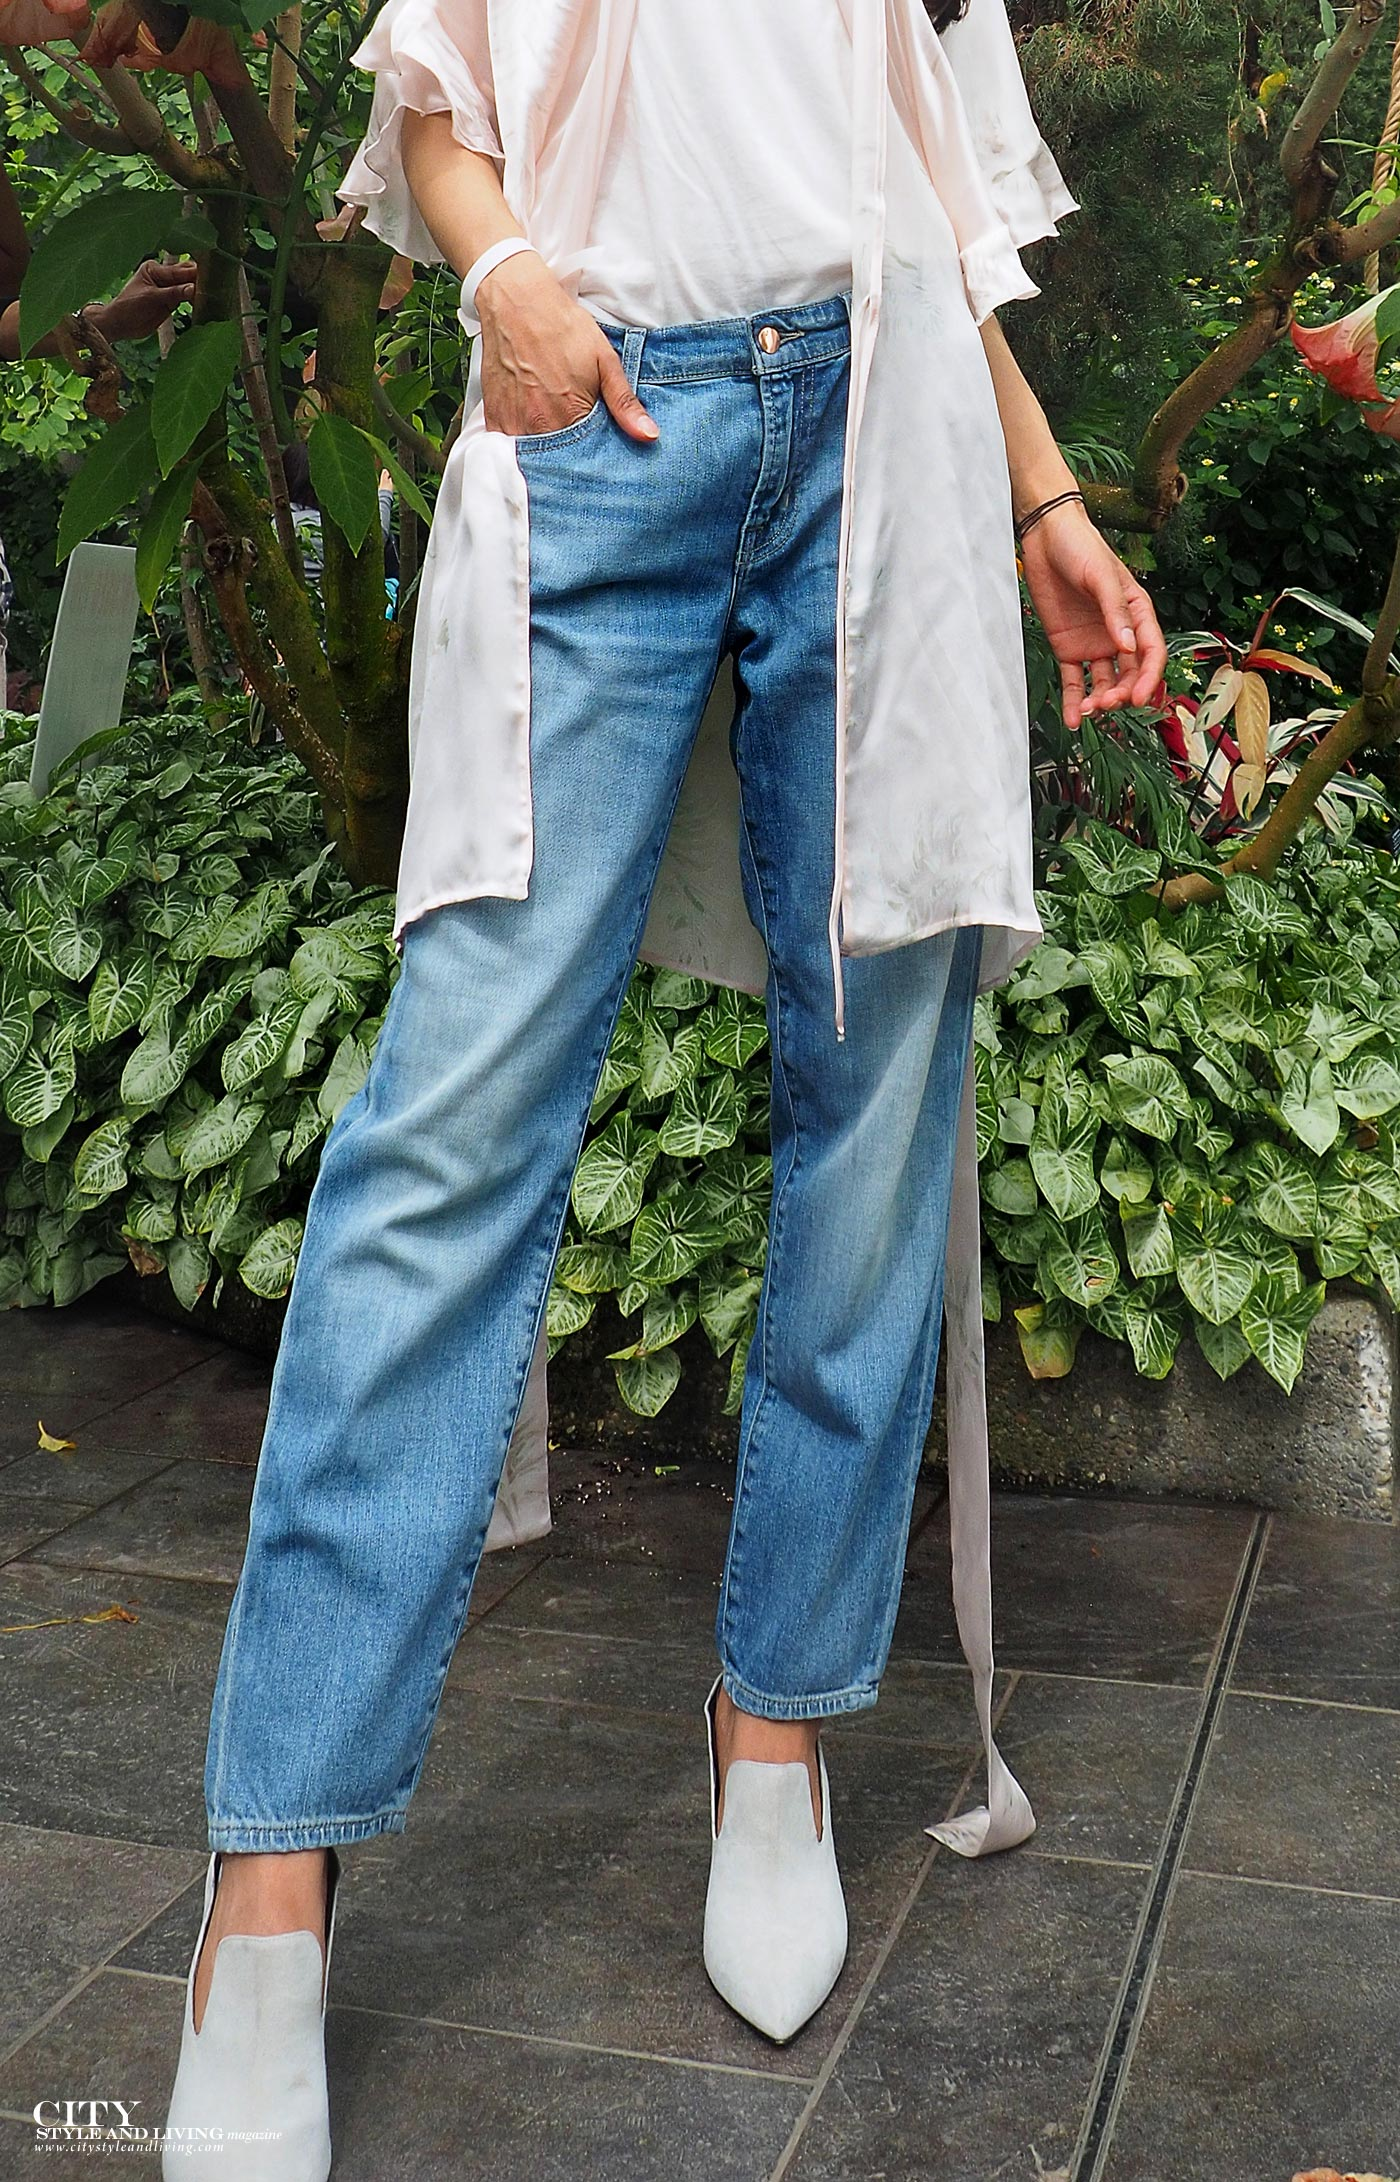 City style and living magazine The Editors Notebook style fashion blogger Shivana Maharaj Calgary zoo mom jeans and silk robe